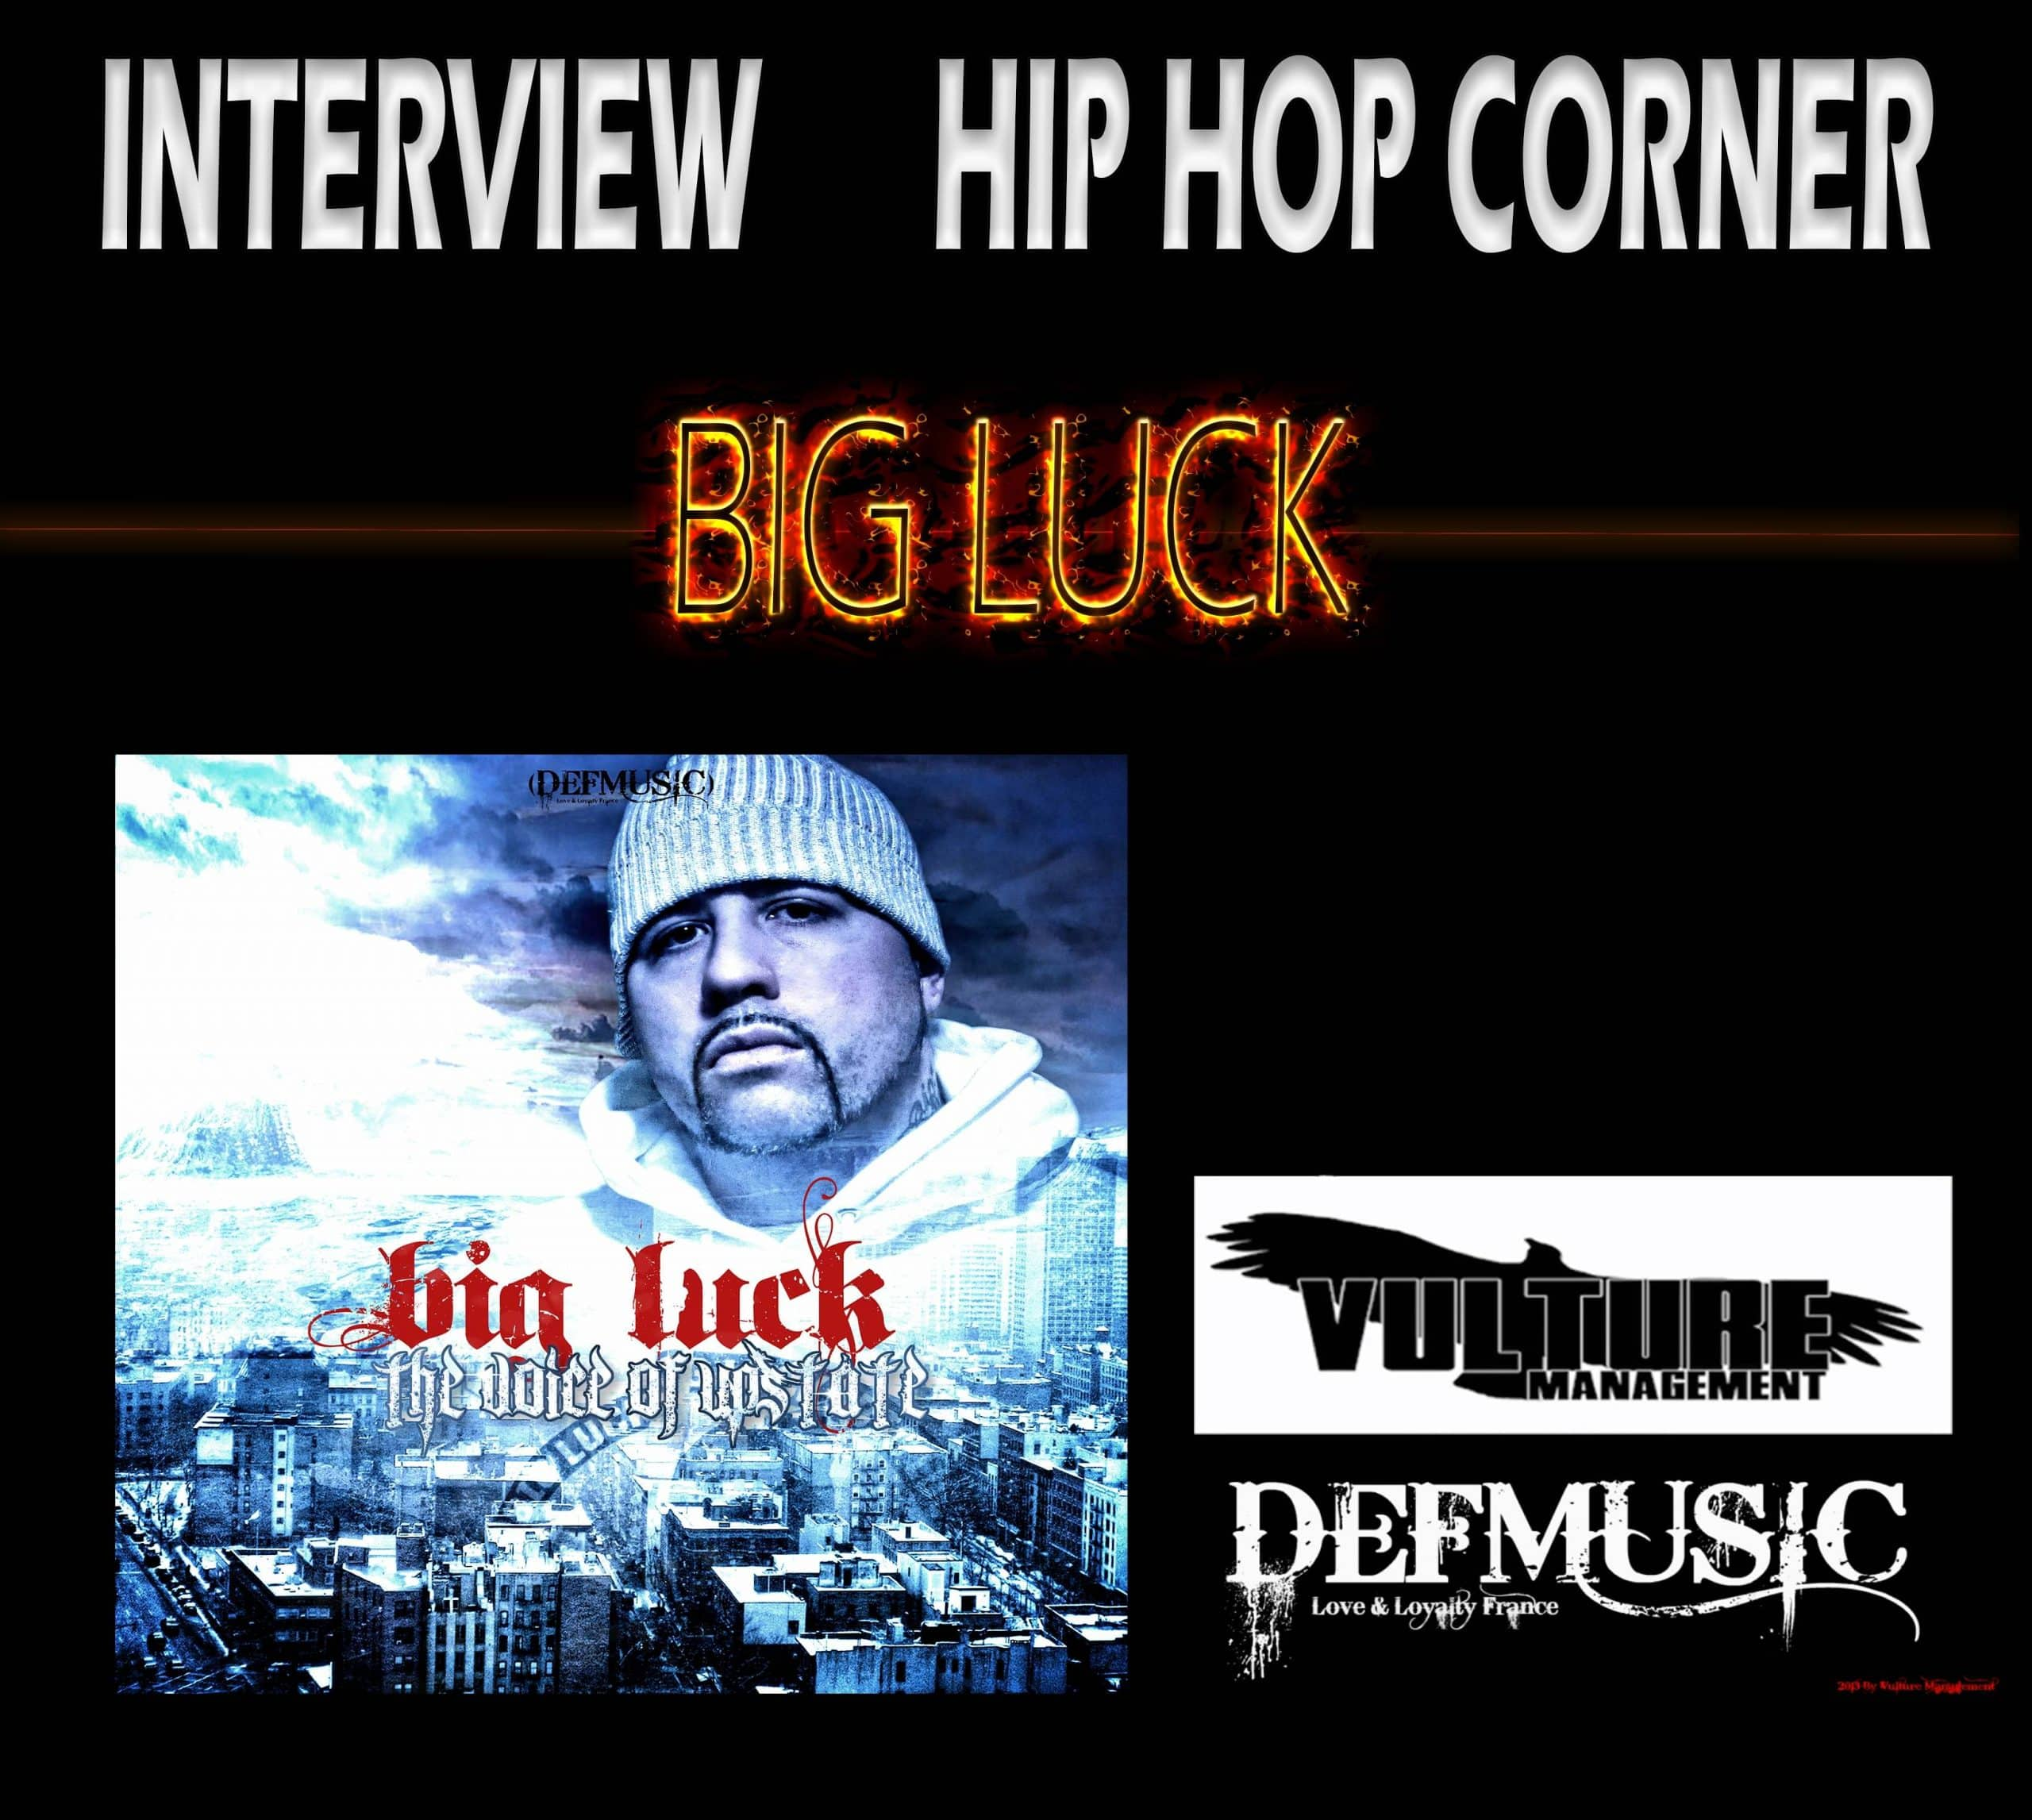 image-big luck-interview